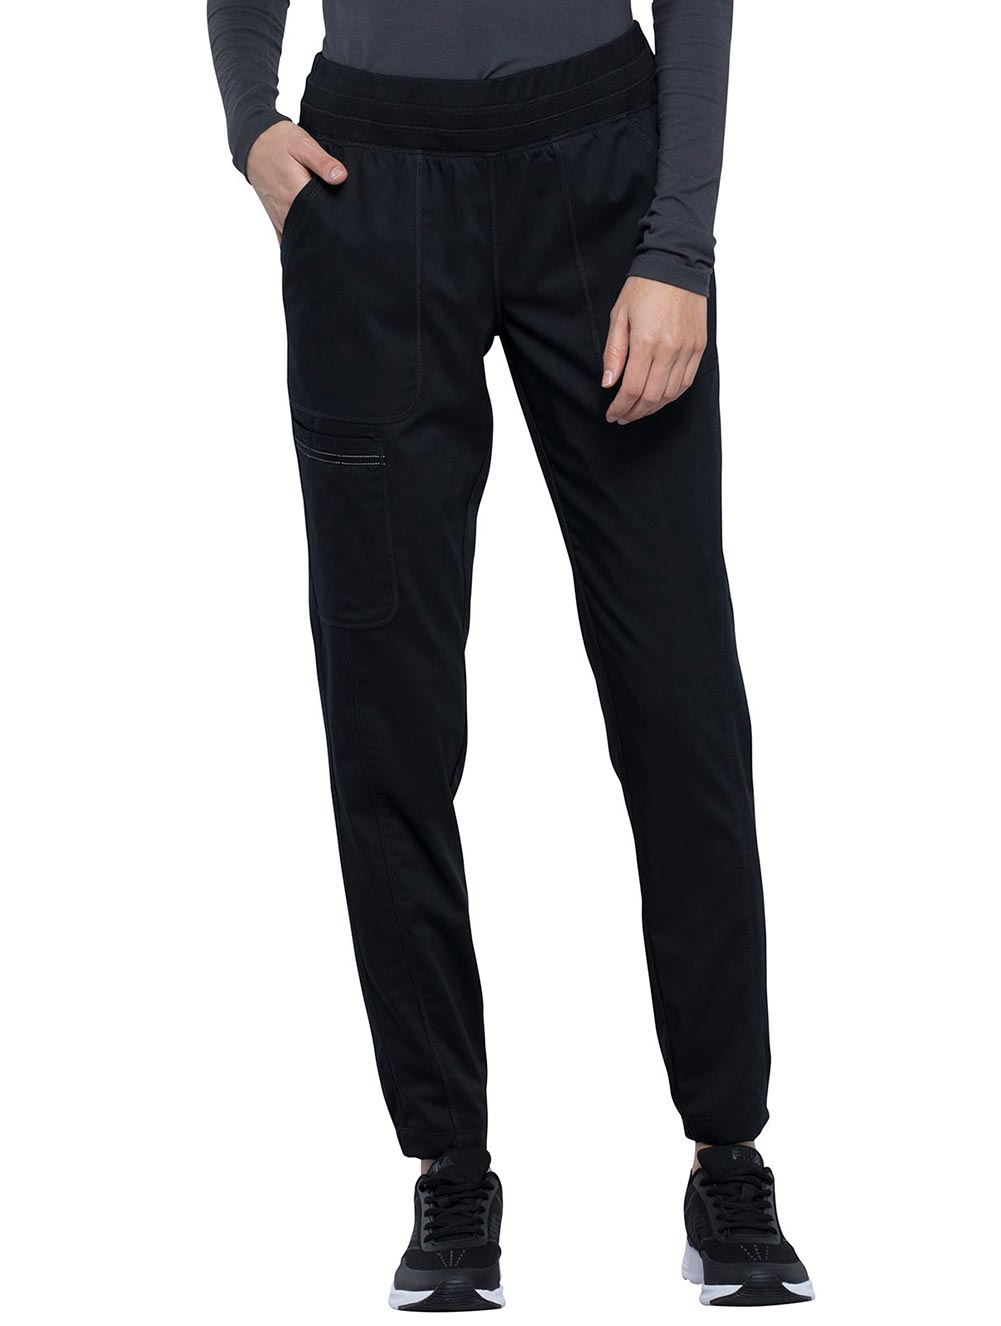 Natural Rise Tapered Leg Jogger